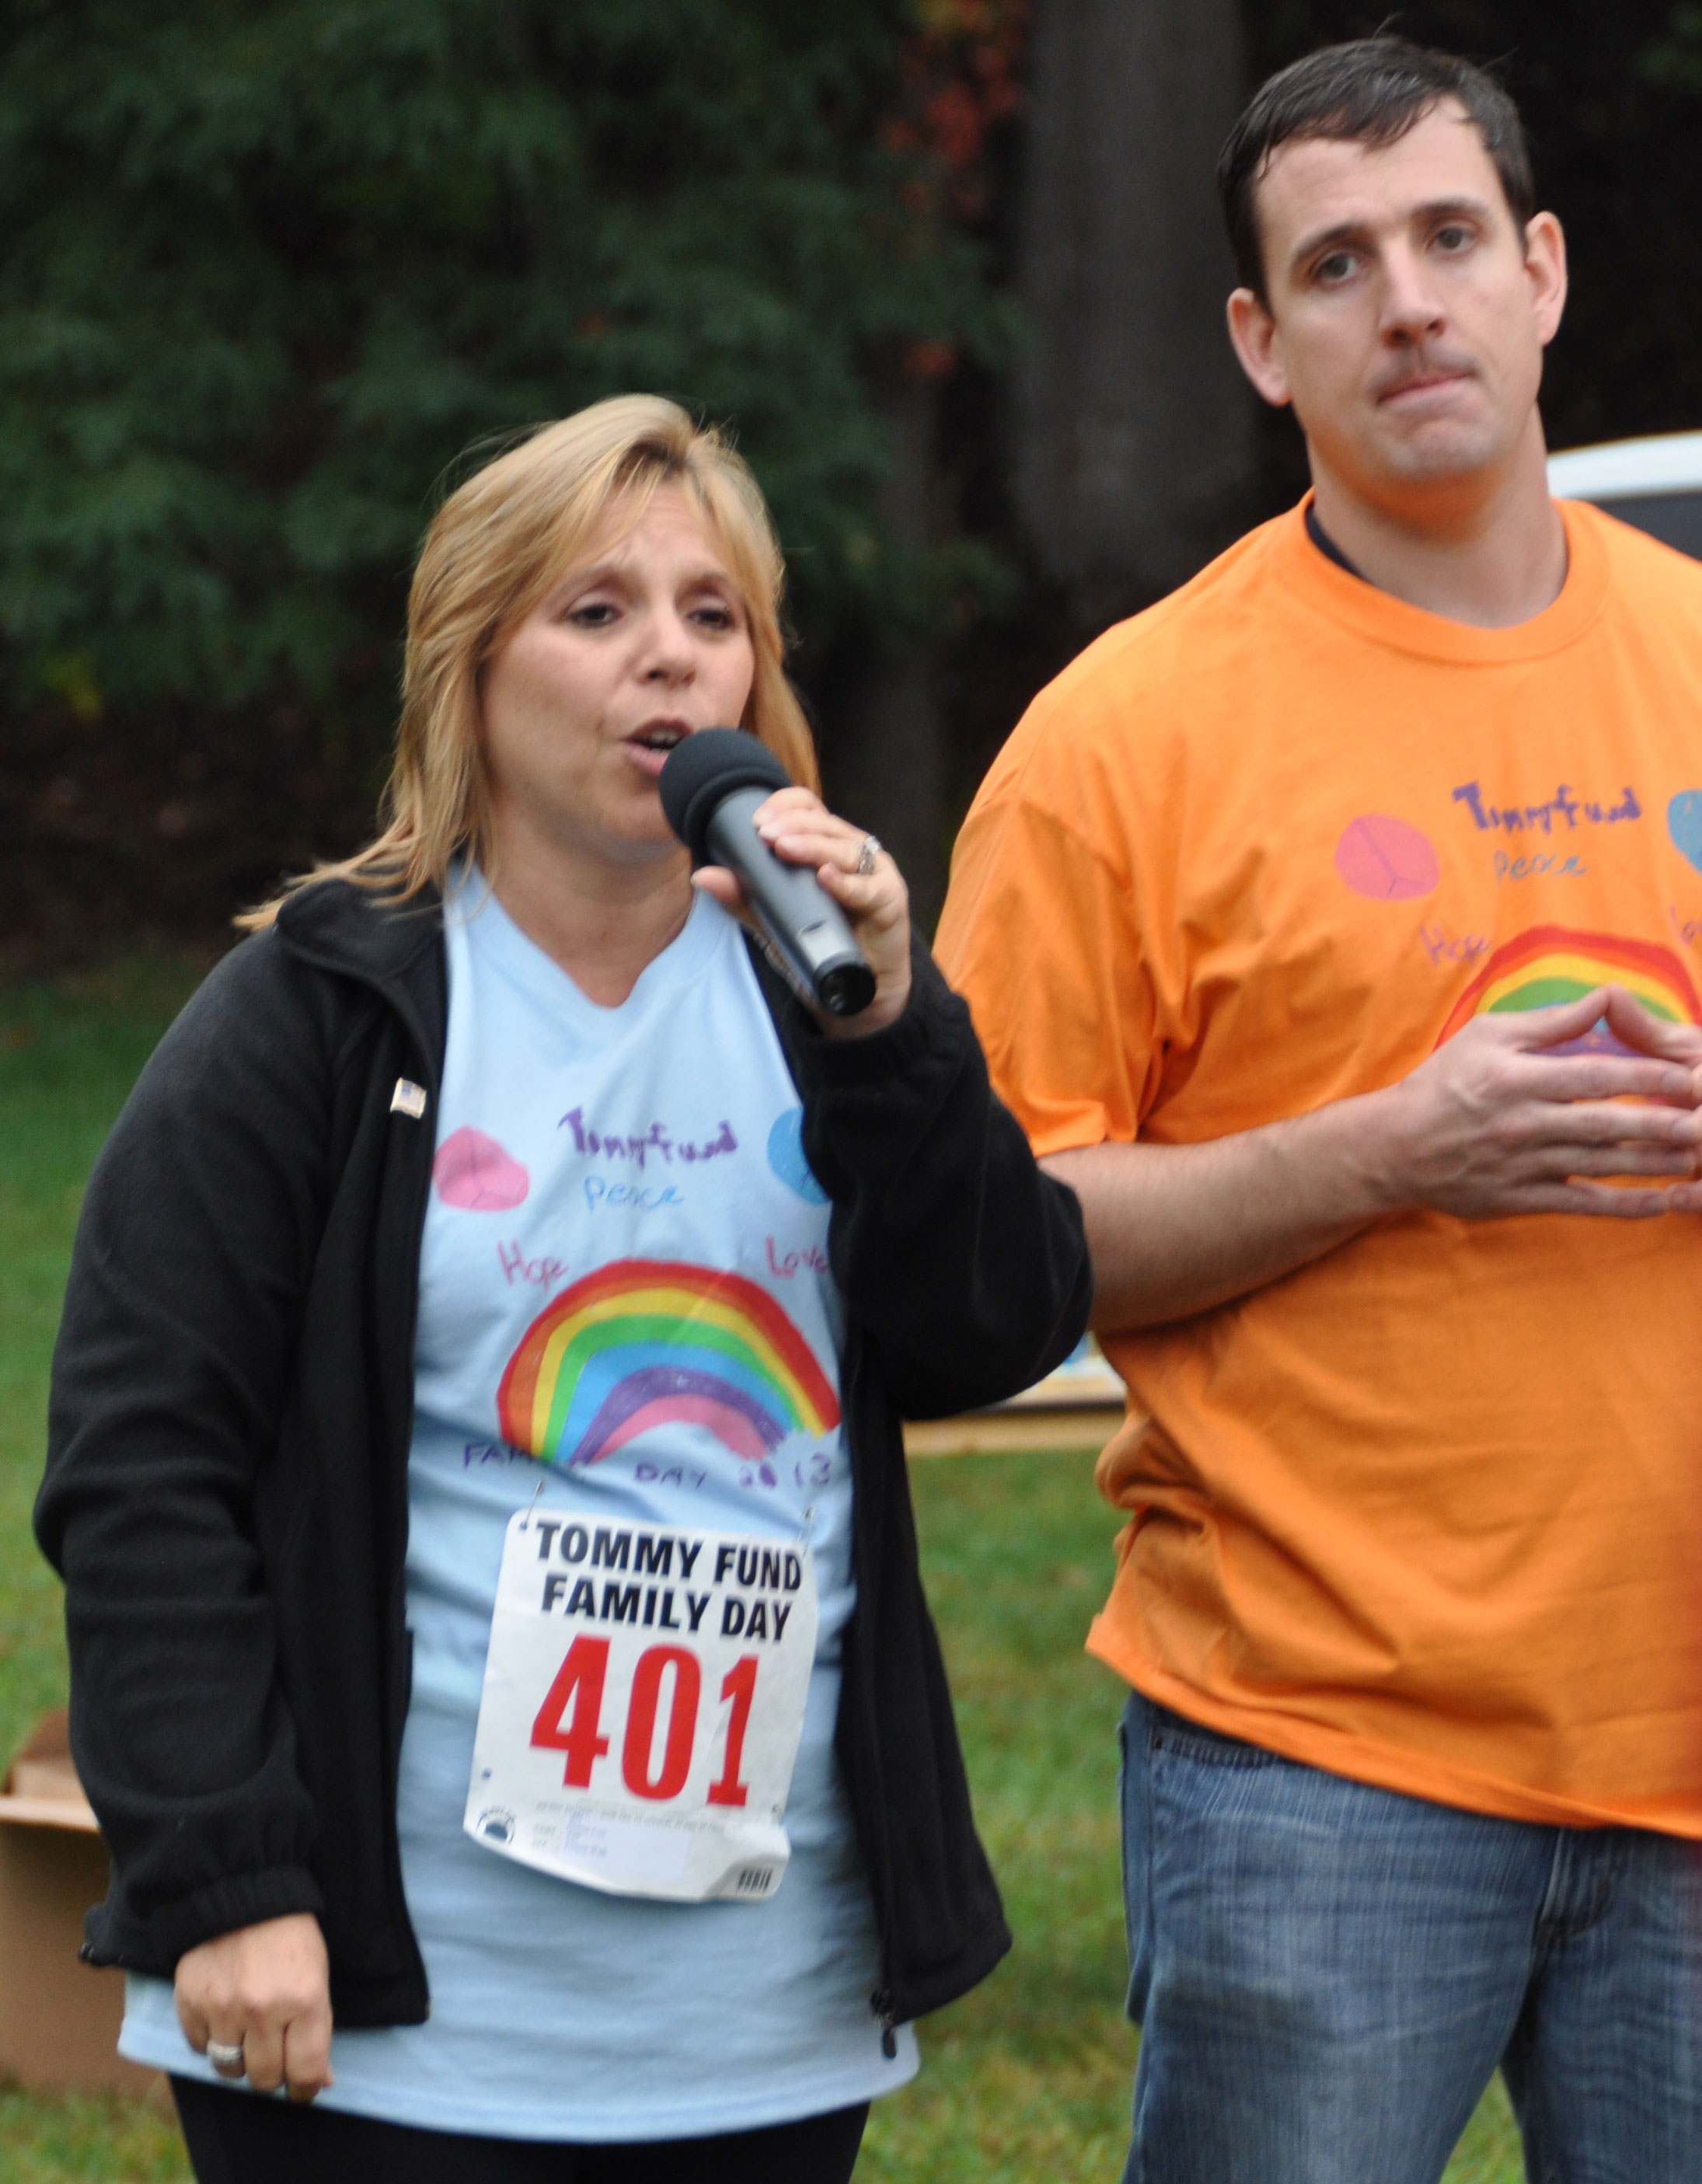 Oncology nurse Denise Carr sings the national anthem while Joe Bowman looks on.